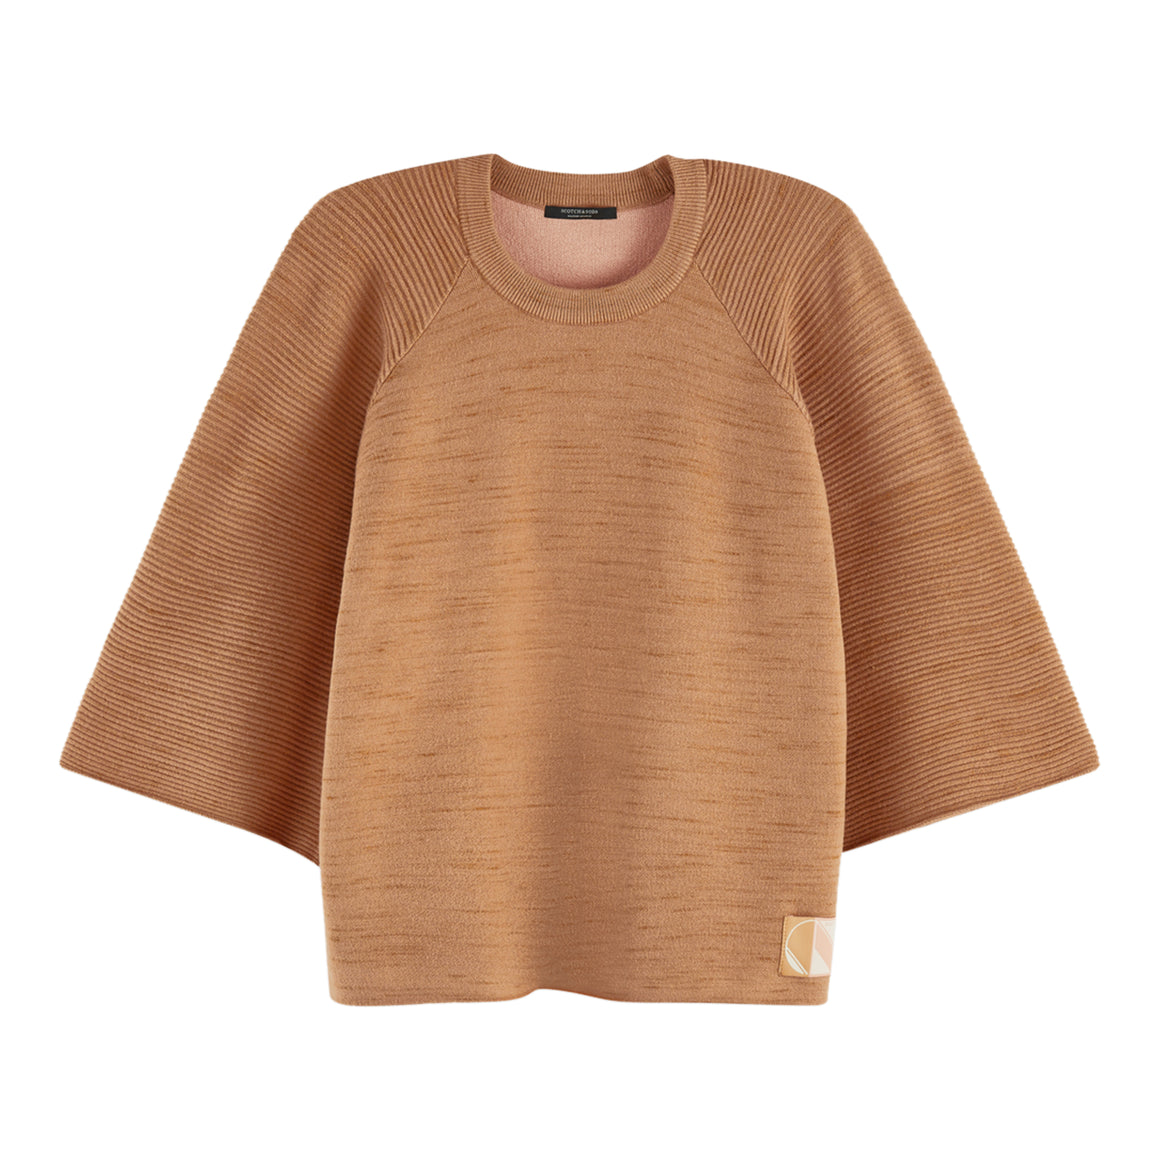 Club Nomand Knitted Jumper for Women in Camel Melange